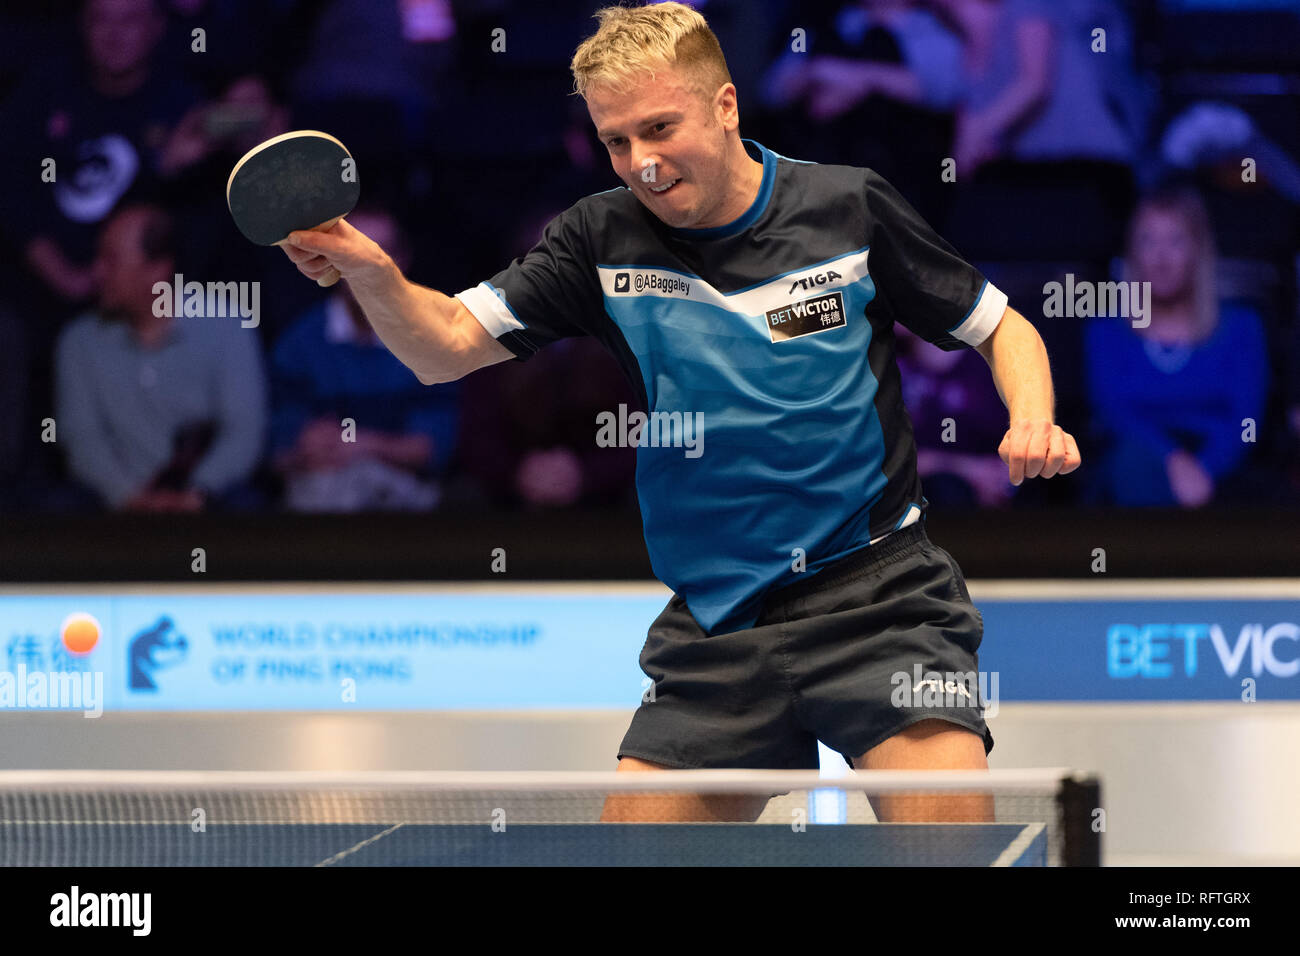 World championship of ping pong betting on sports match preview world cup betting online